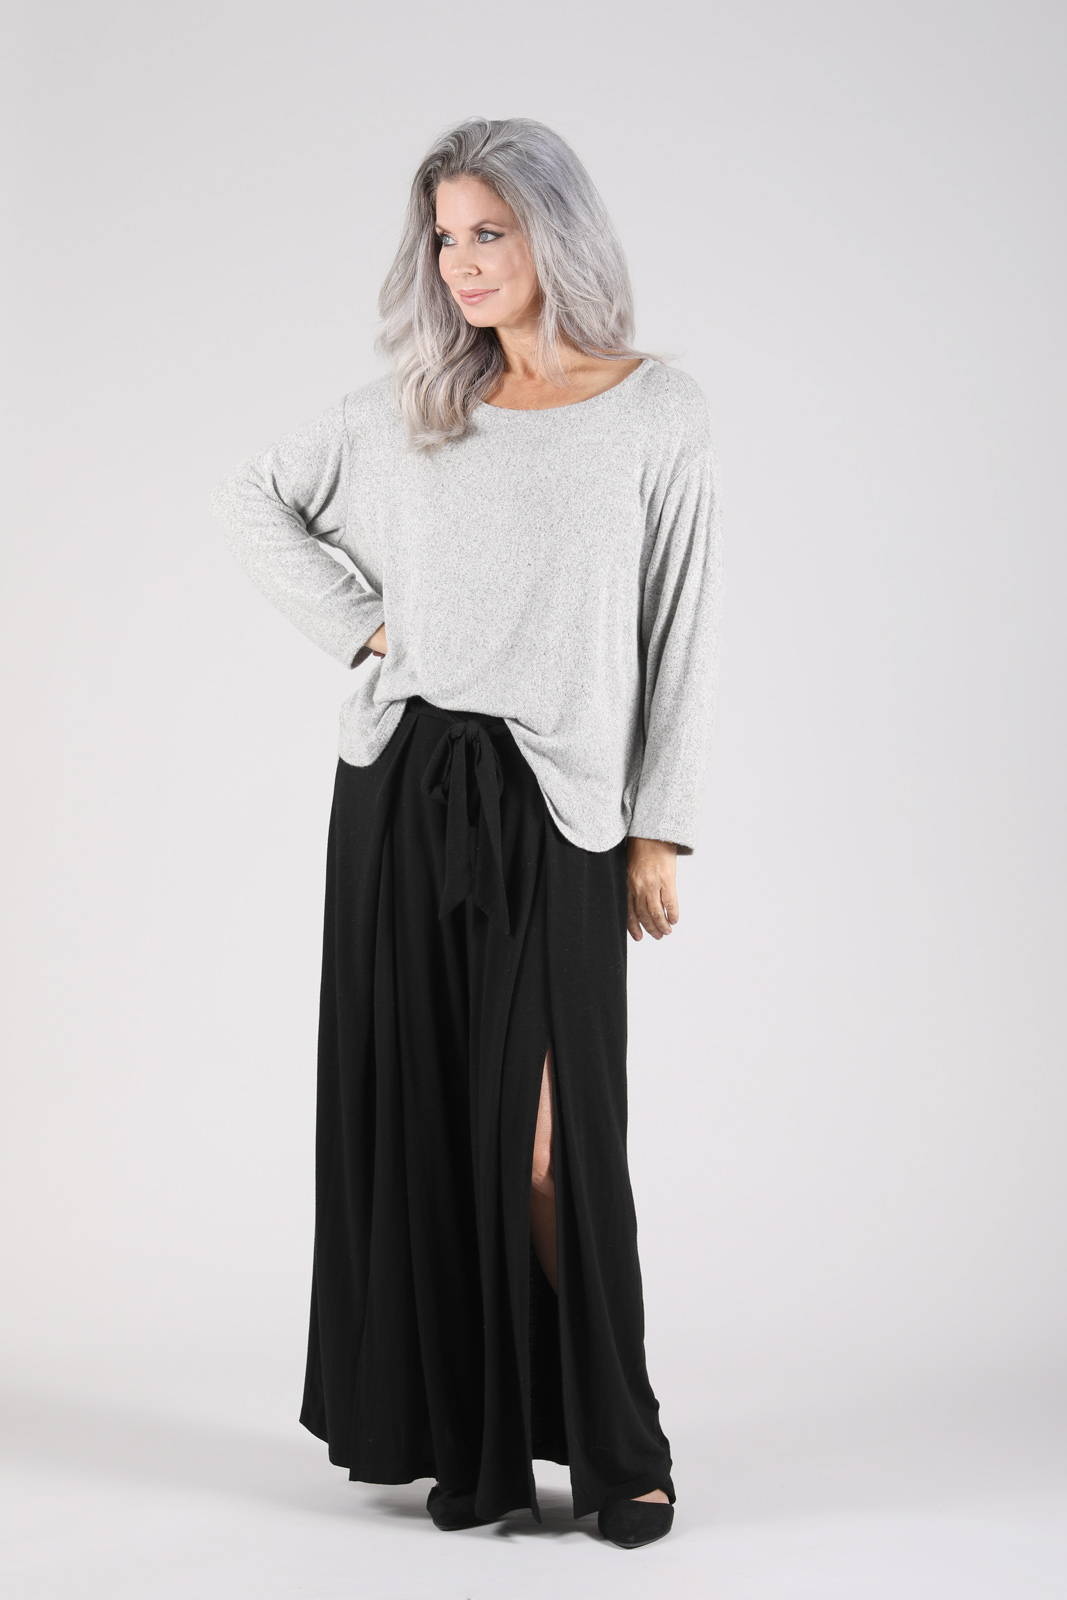 Model wearing the Valo Sweater with heather grey with the Grian Pant in black